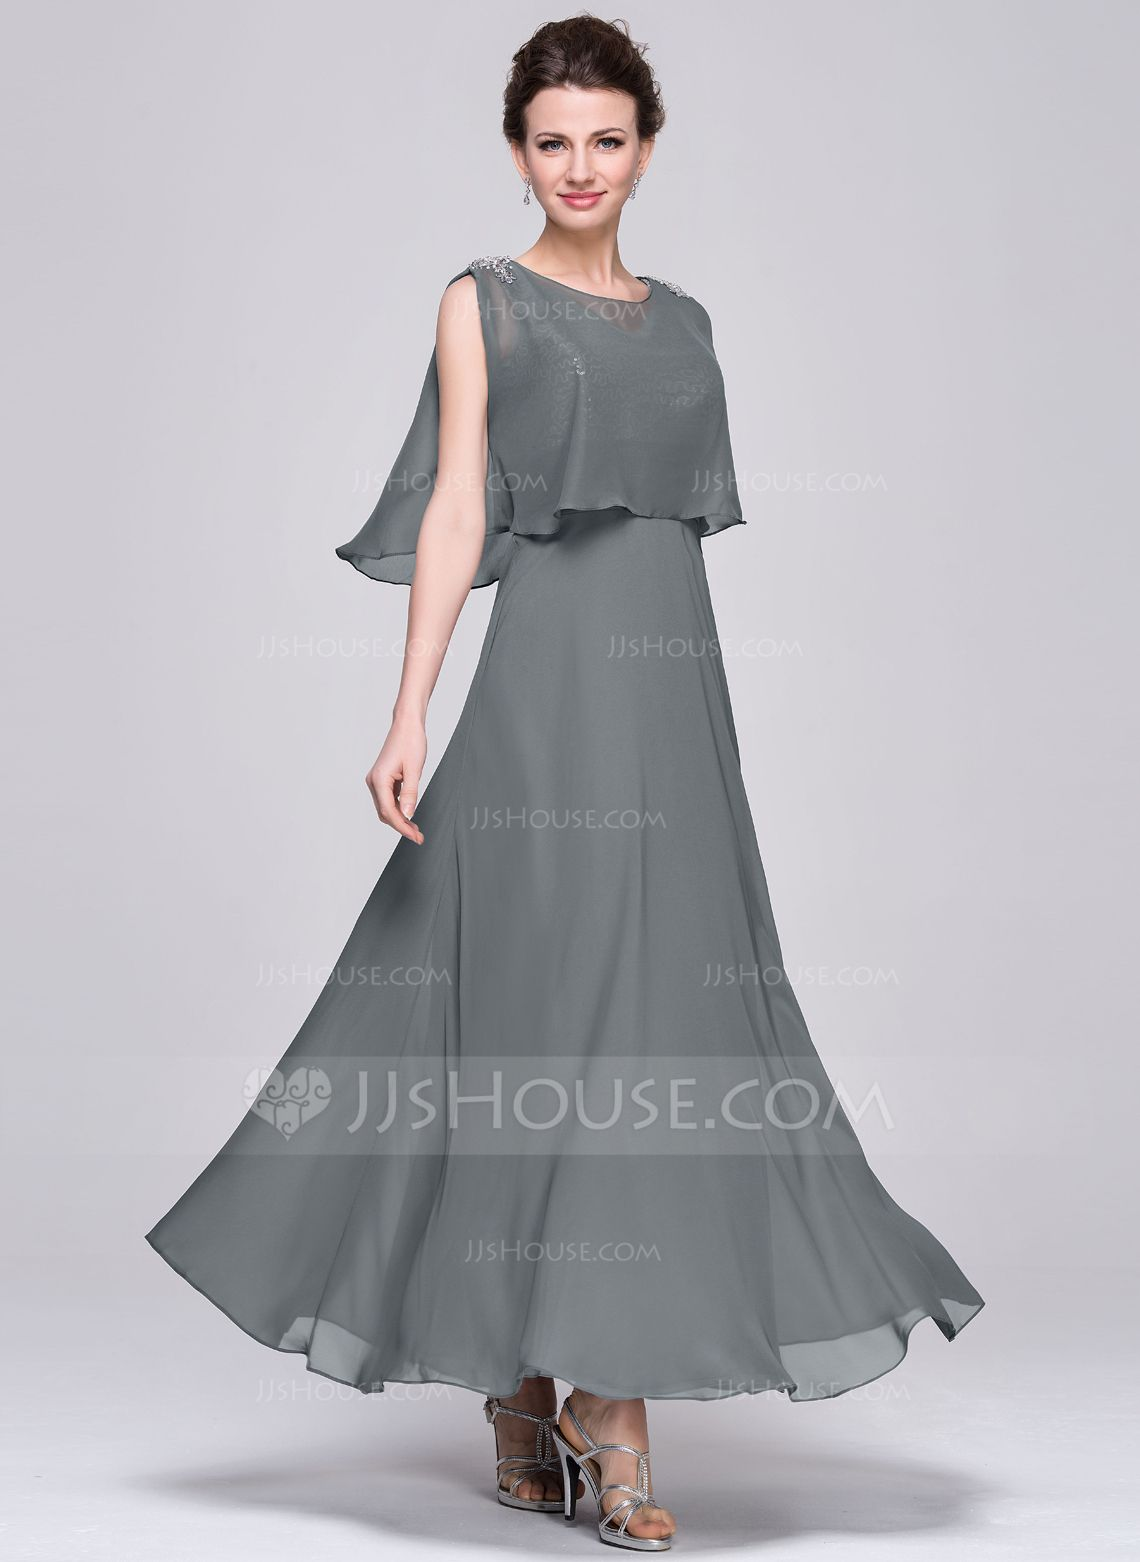 cf283c5f9ee A-Line Princess V-neck Ankle-Length Chiffon Sequined Mother of the Bride  Dress With Ruffle (008058400) - JJsHouse